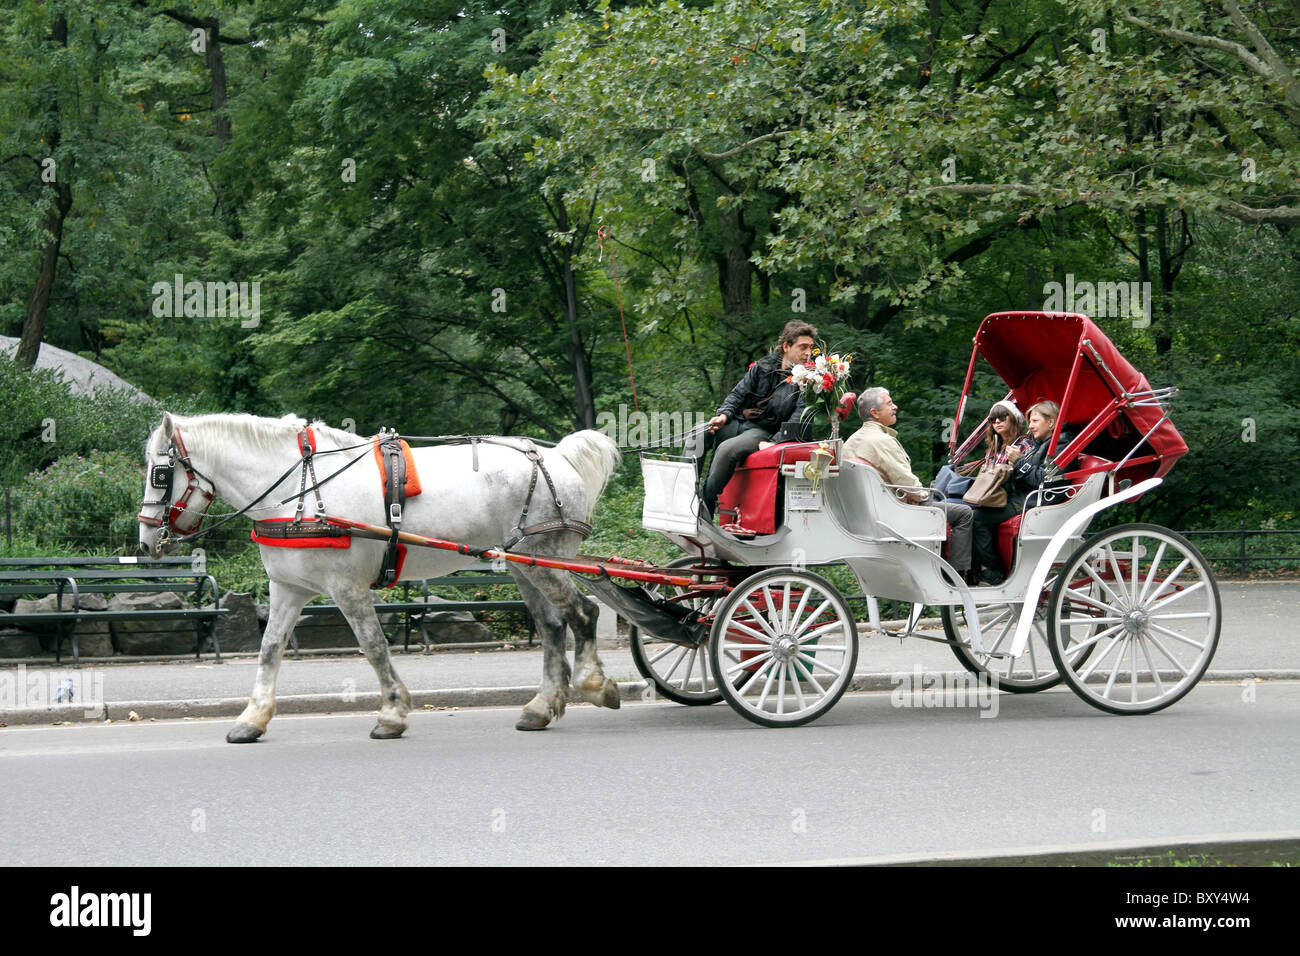 horse drawn carriage ride in central park in new york america stock photo royalty free image. Black Bedroom Furniture Sets. Home Design Ideas